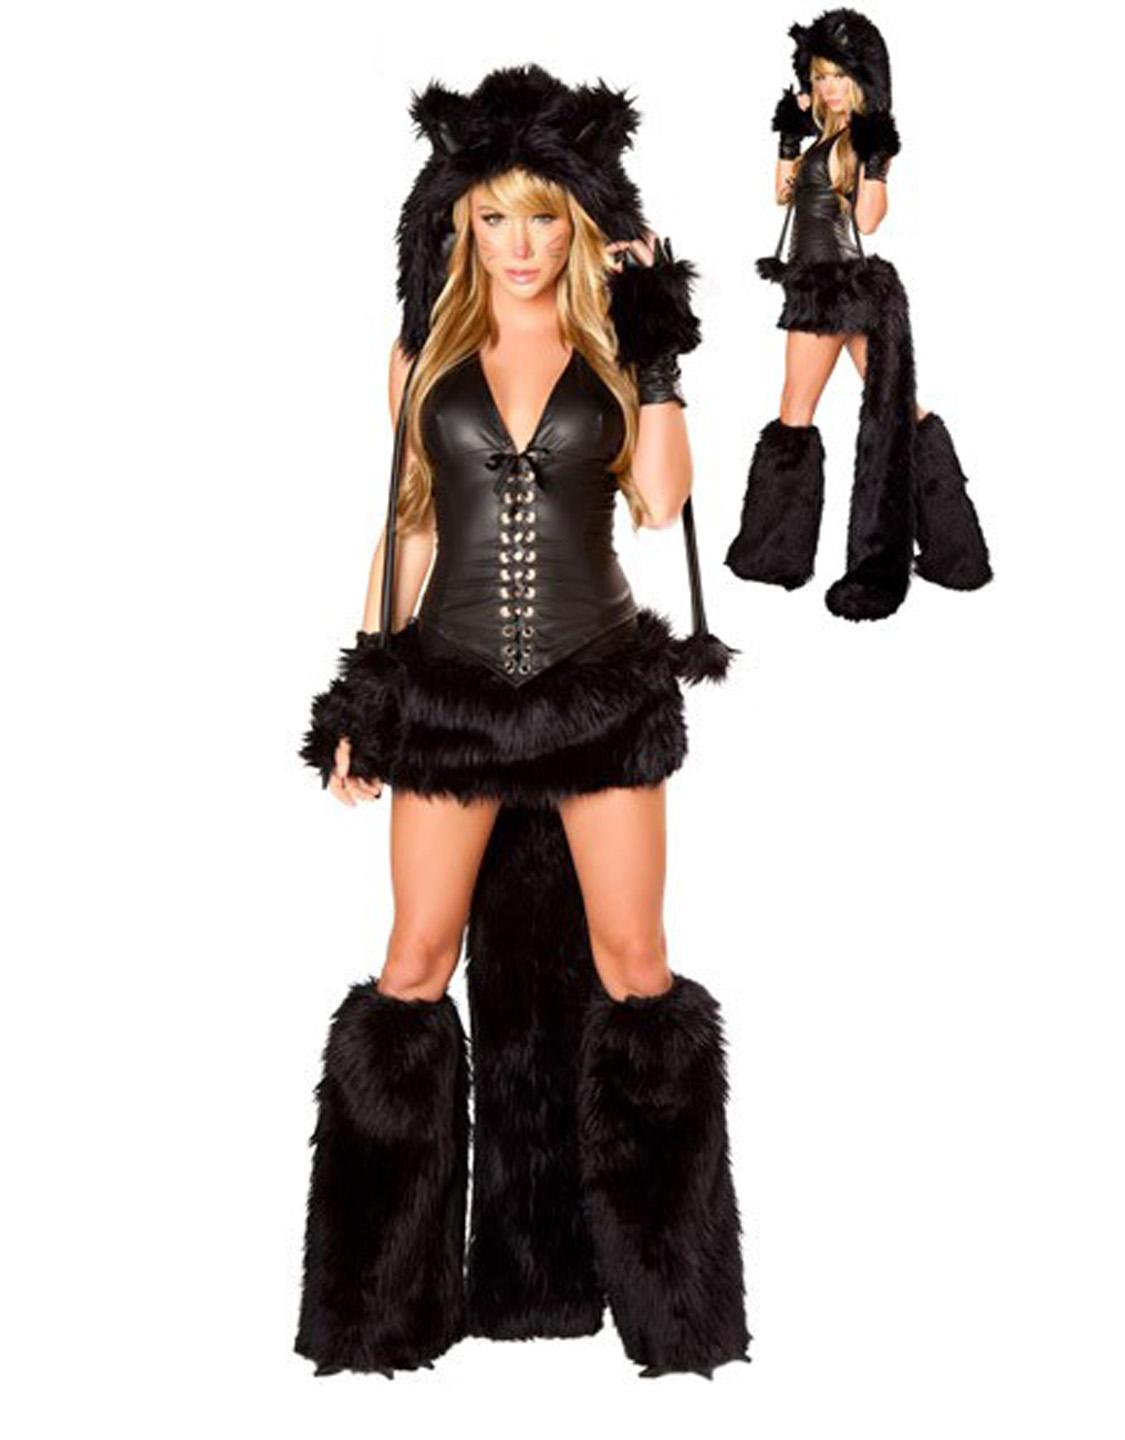 Black-Leather-Animal-Costume-W438404-1